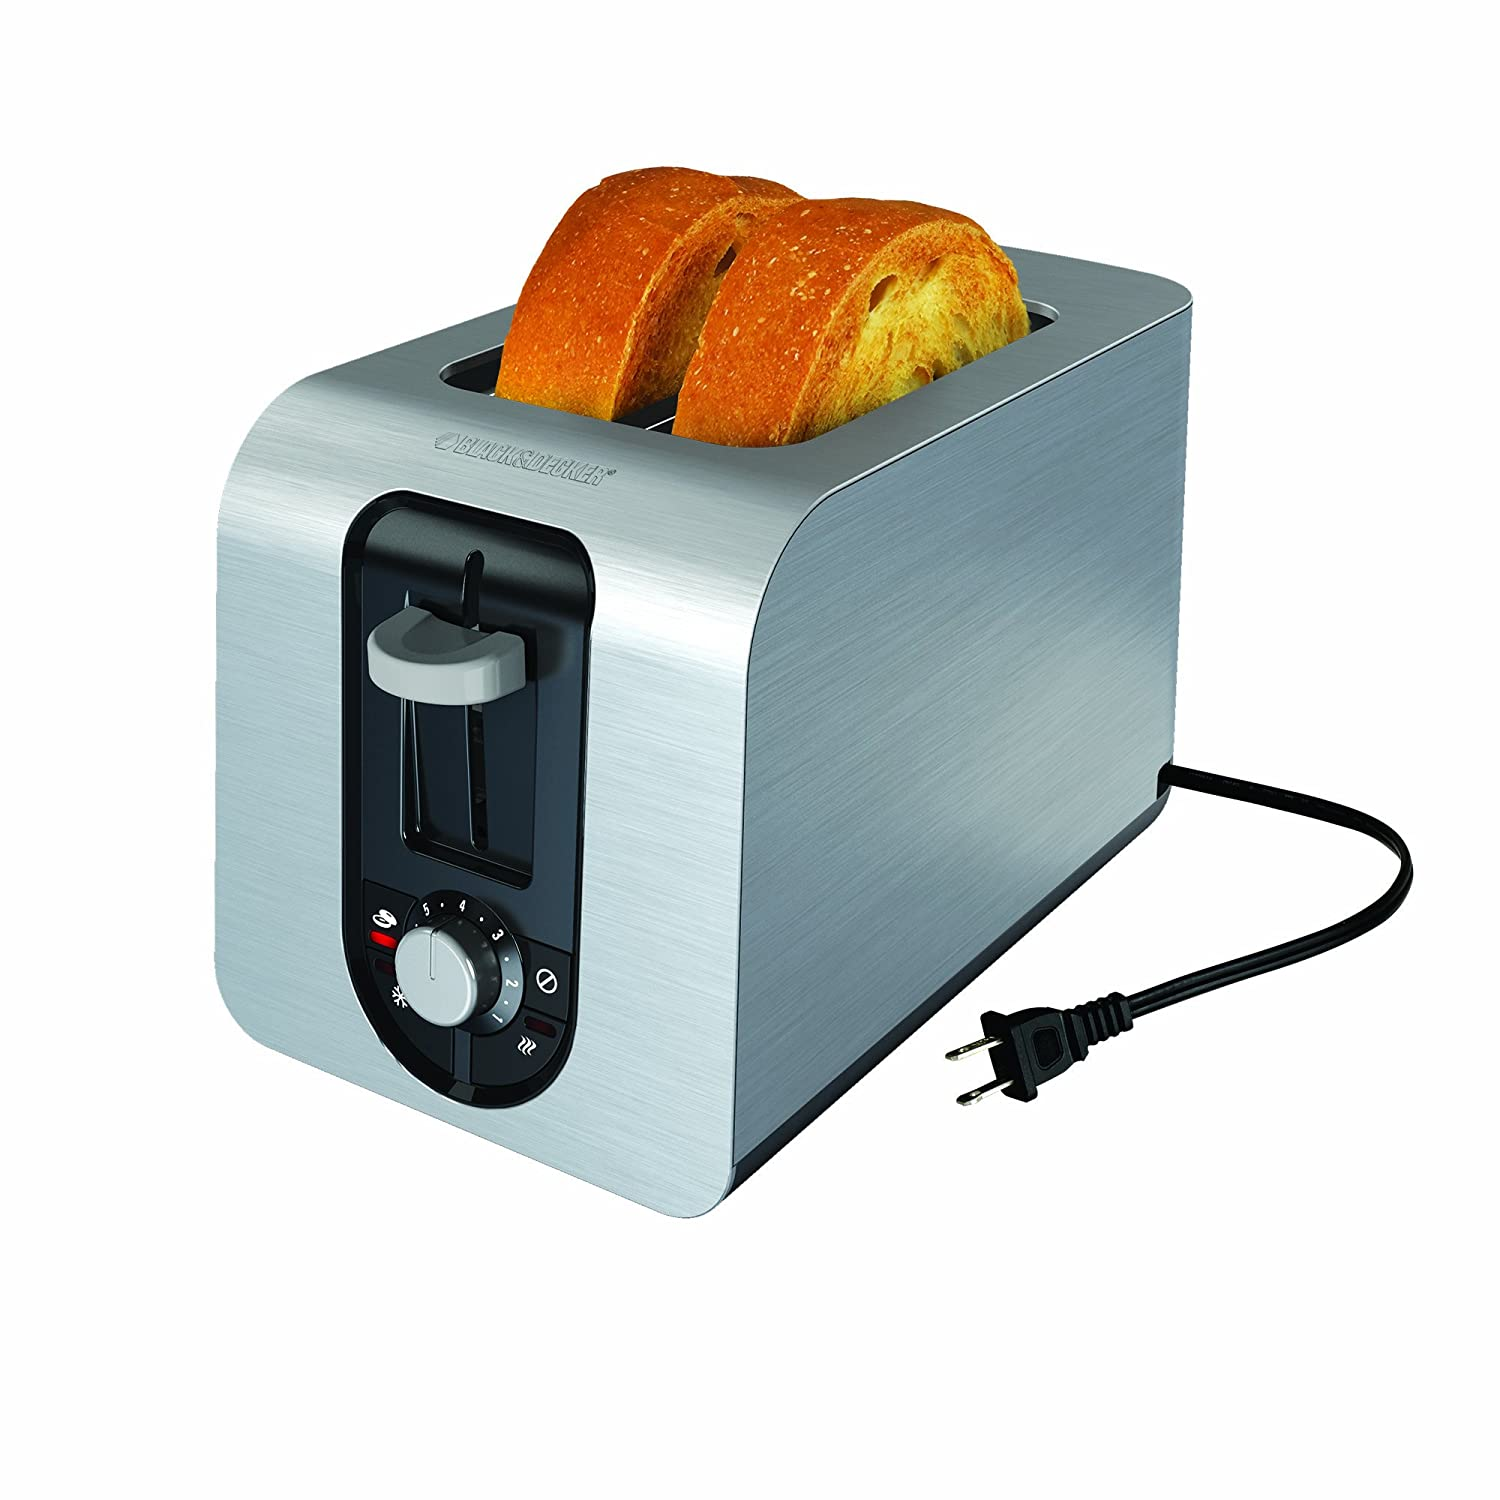 Amazon.com: BLACK+DECKER TR6341S 4-Slice Toaster, Bagel Toaster ...